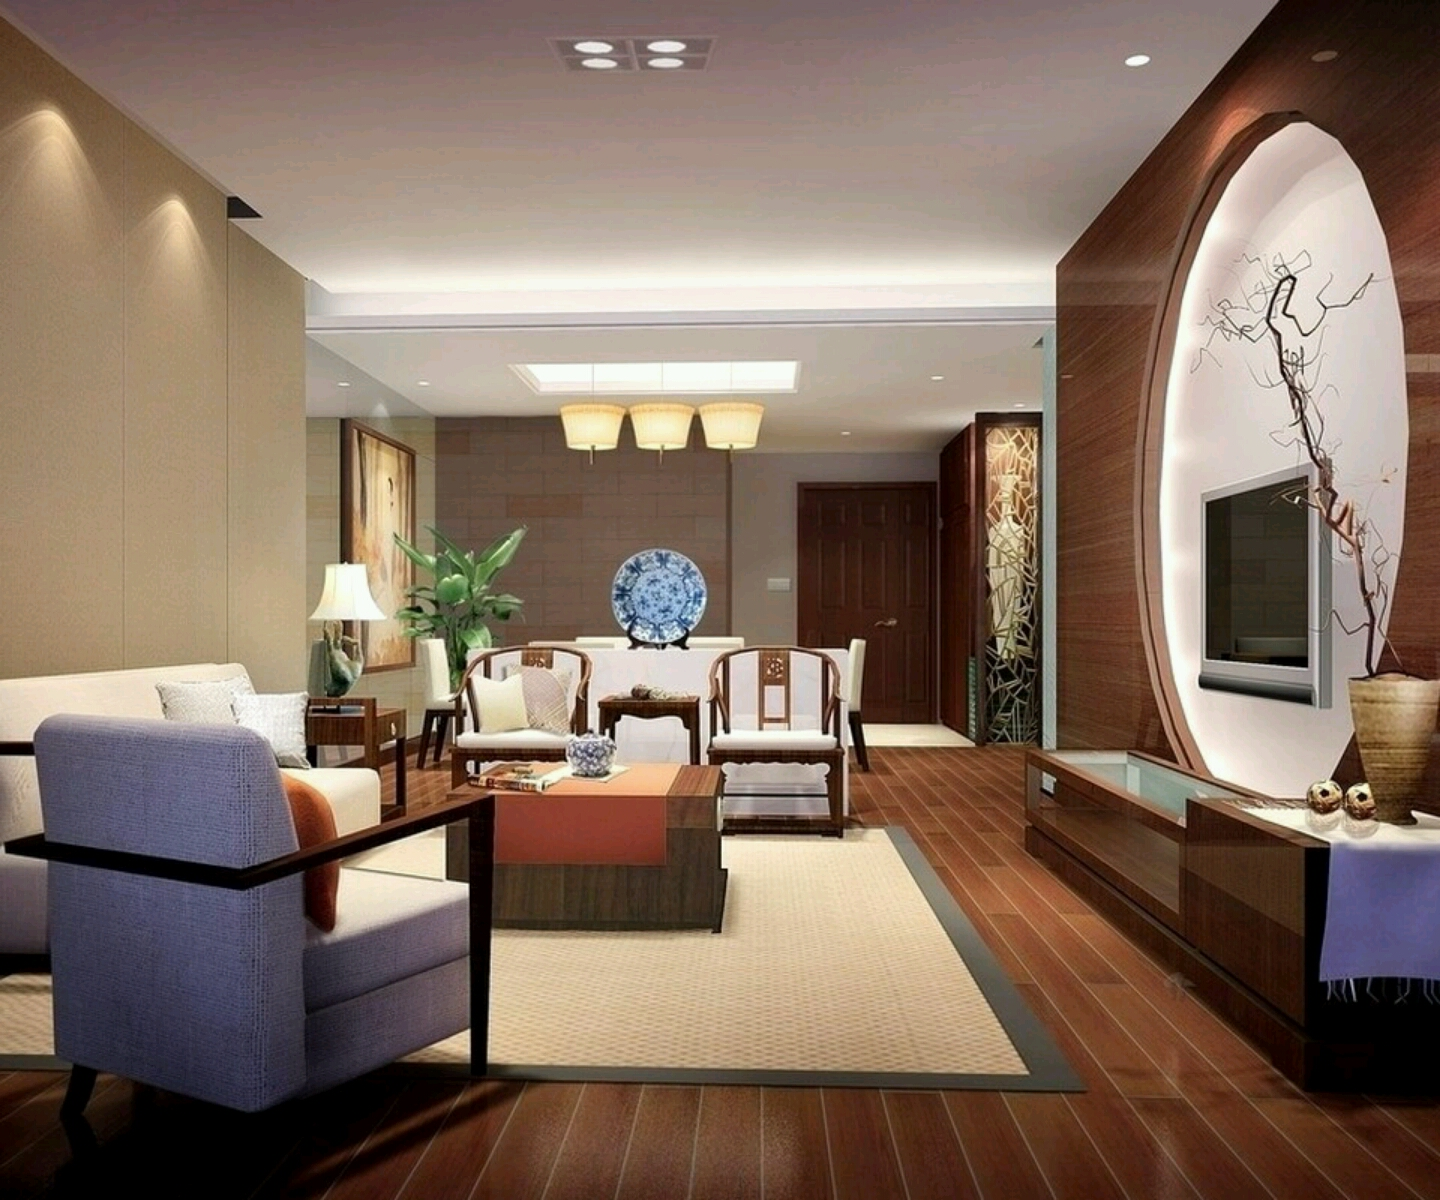 home interior design ideas living room luxury homes interior decoration living room designs ideas - Modern Luxury Homes Interior Design